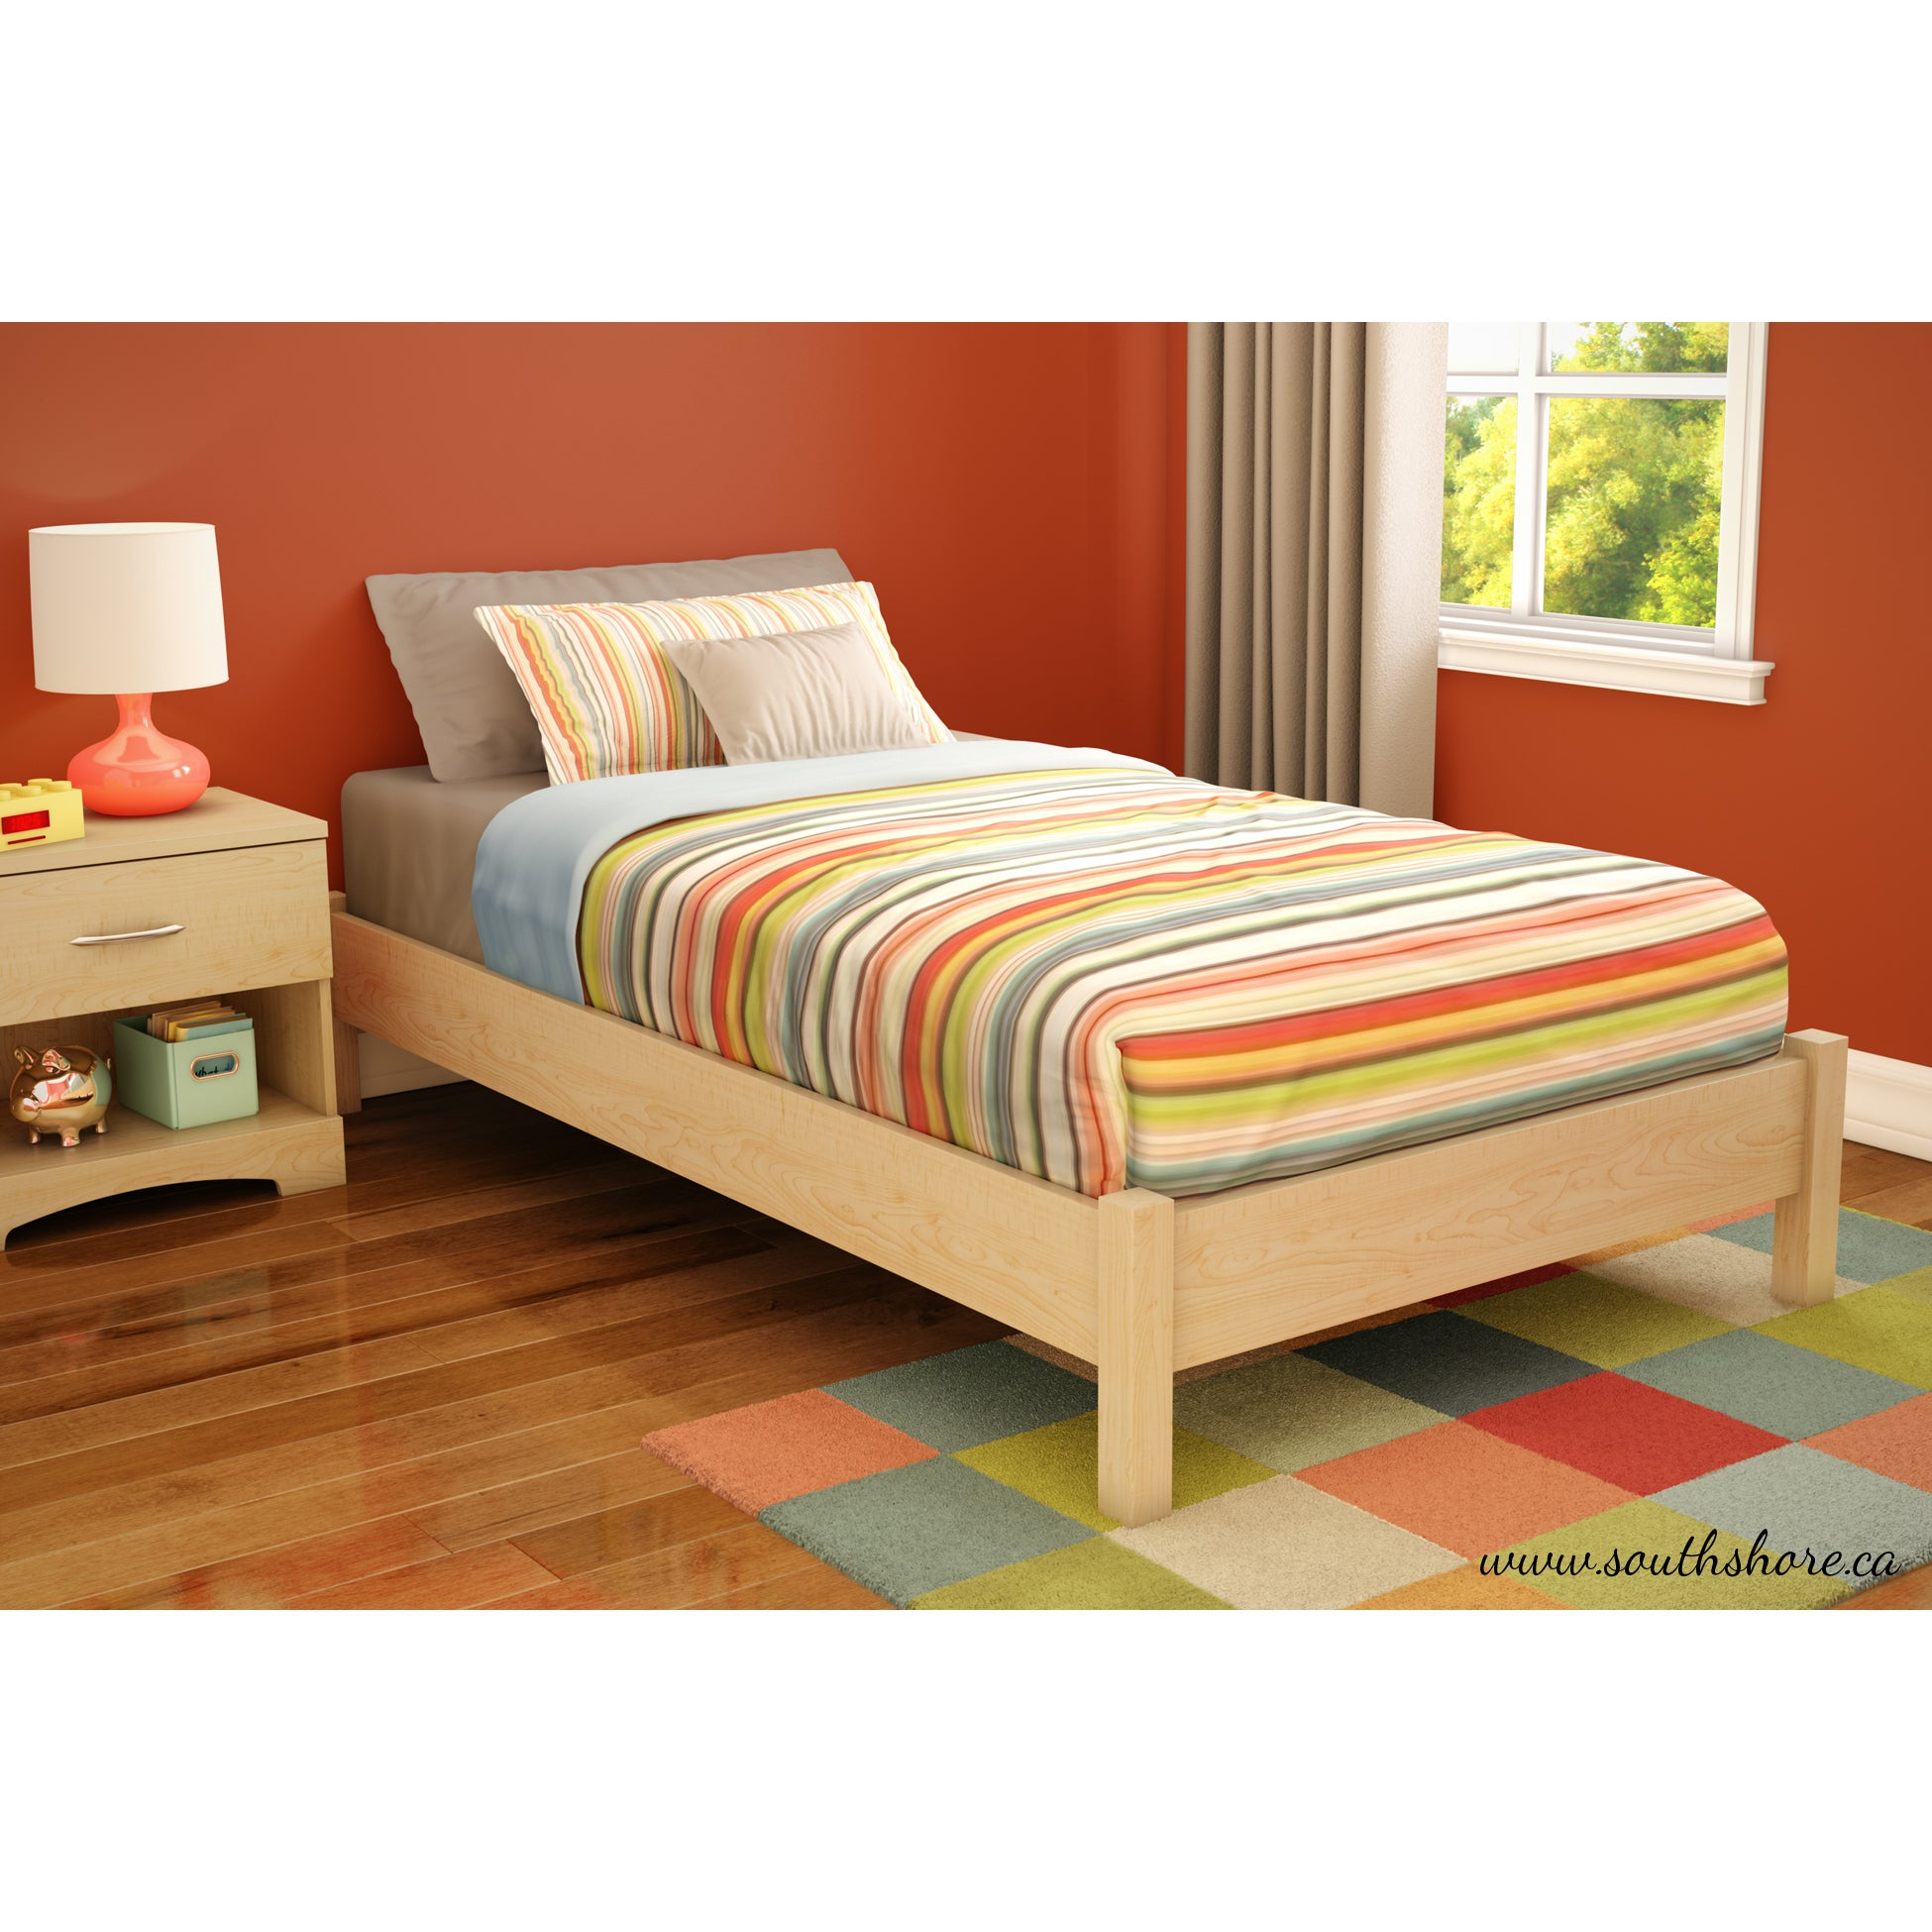 Twin platform bed frame - South Shore Step One 39 Inch Twin Platform